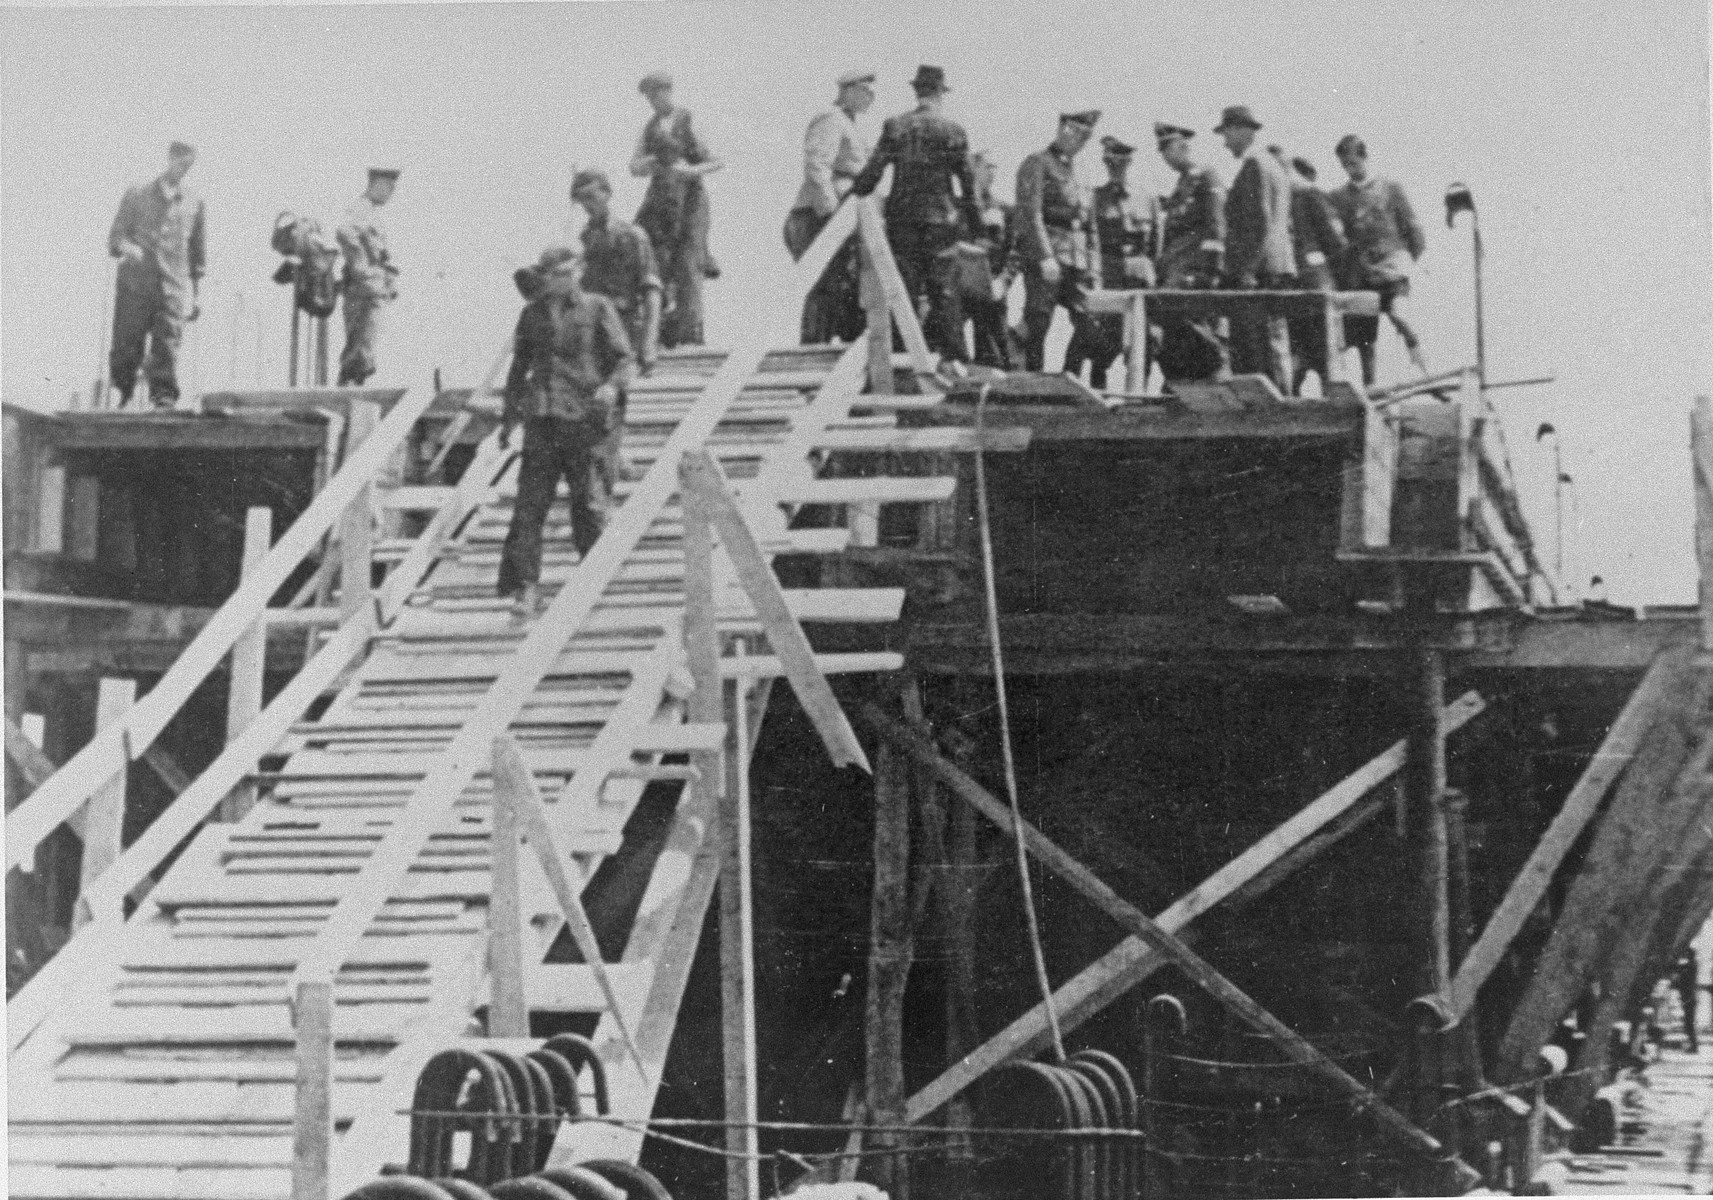 Reichsfuehrer SS Heinrich Himmler stands alongside Max Faust (wearing the fedora) on the upper floor of a partially constructed building, during a tour of the Monowitz-Buna building site.  Faust, who was an IG Farben engineer, was the head of building operations at Monowitz-Buna.